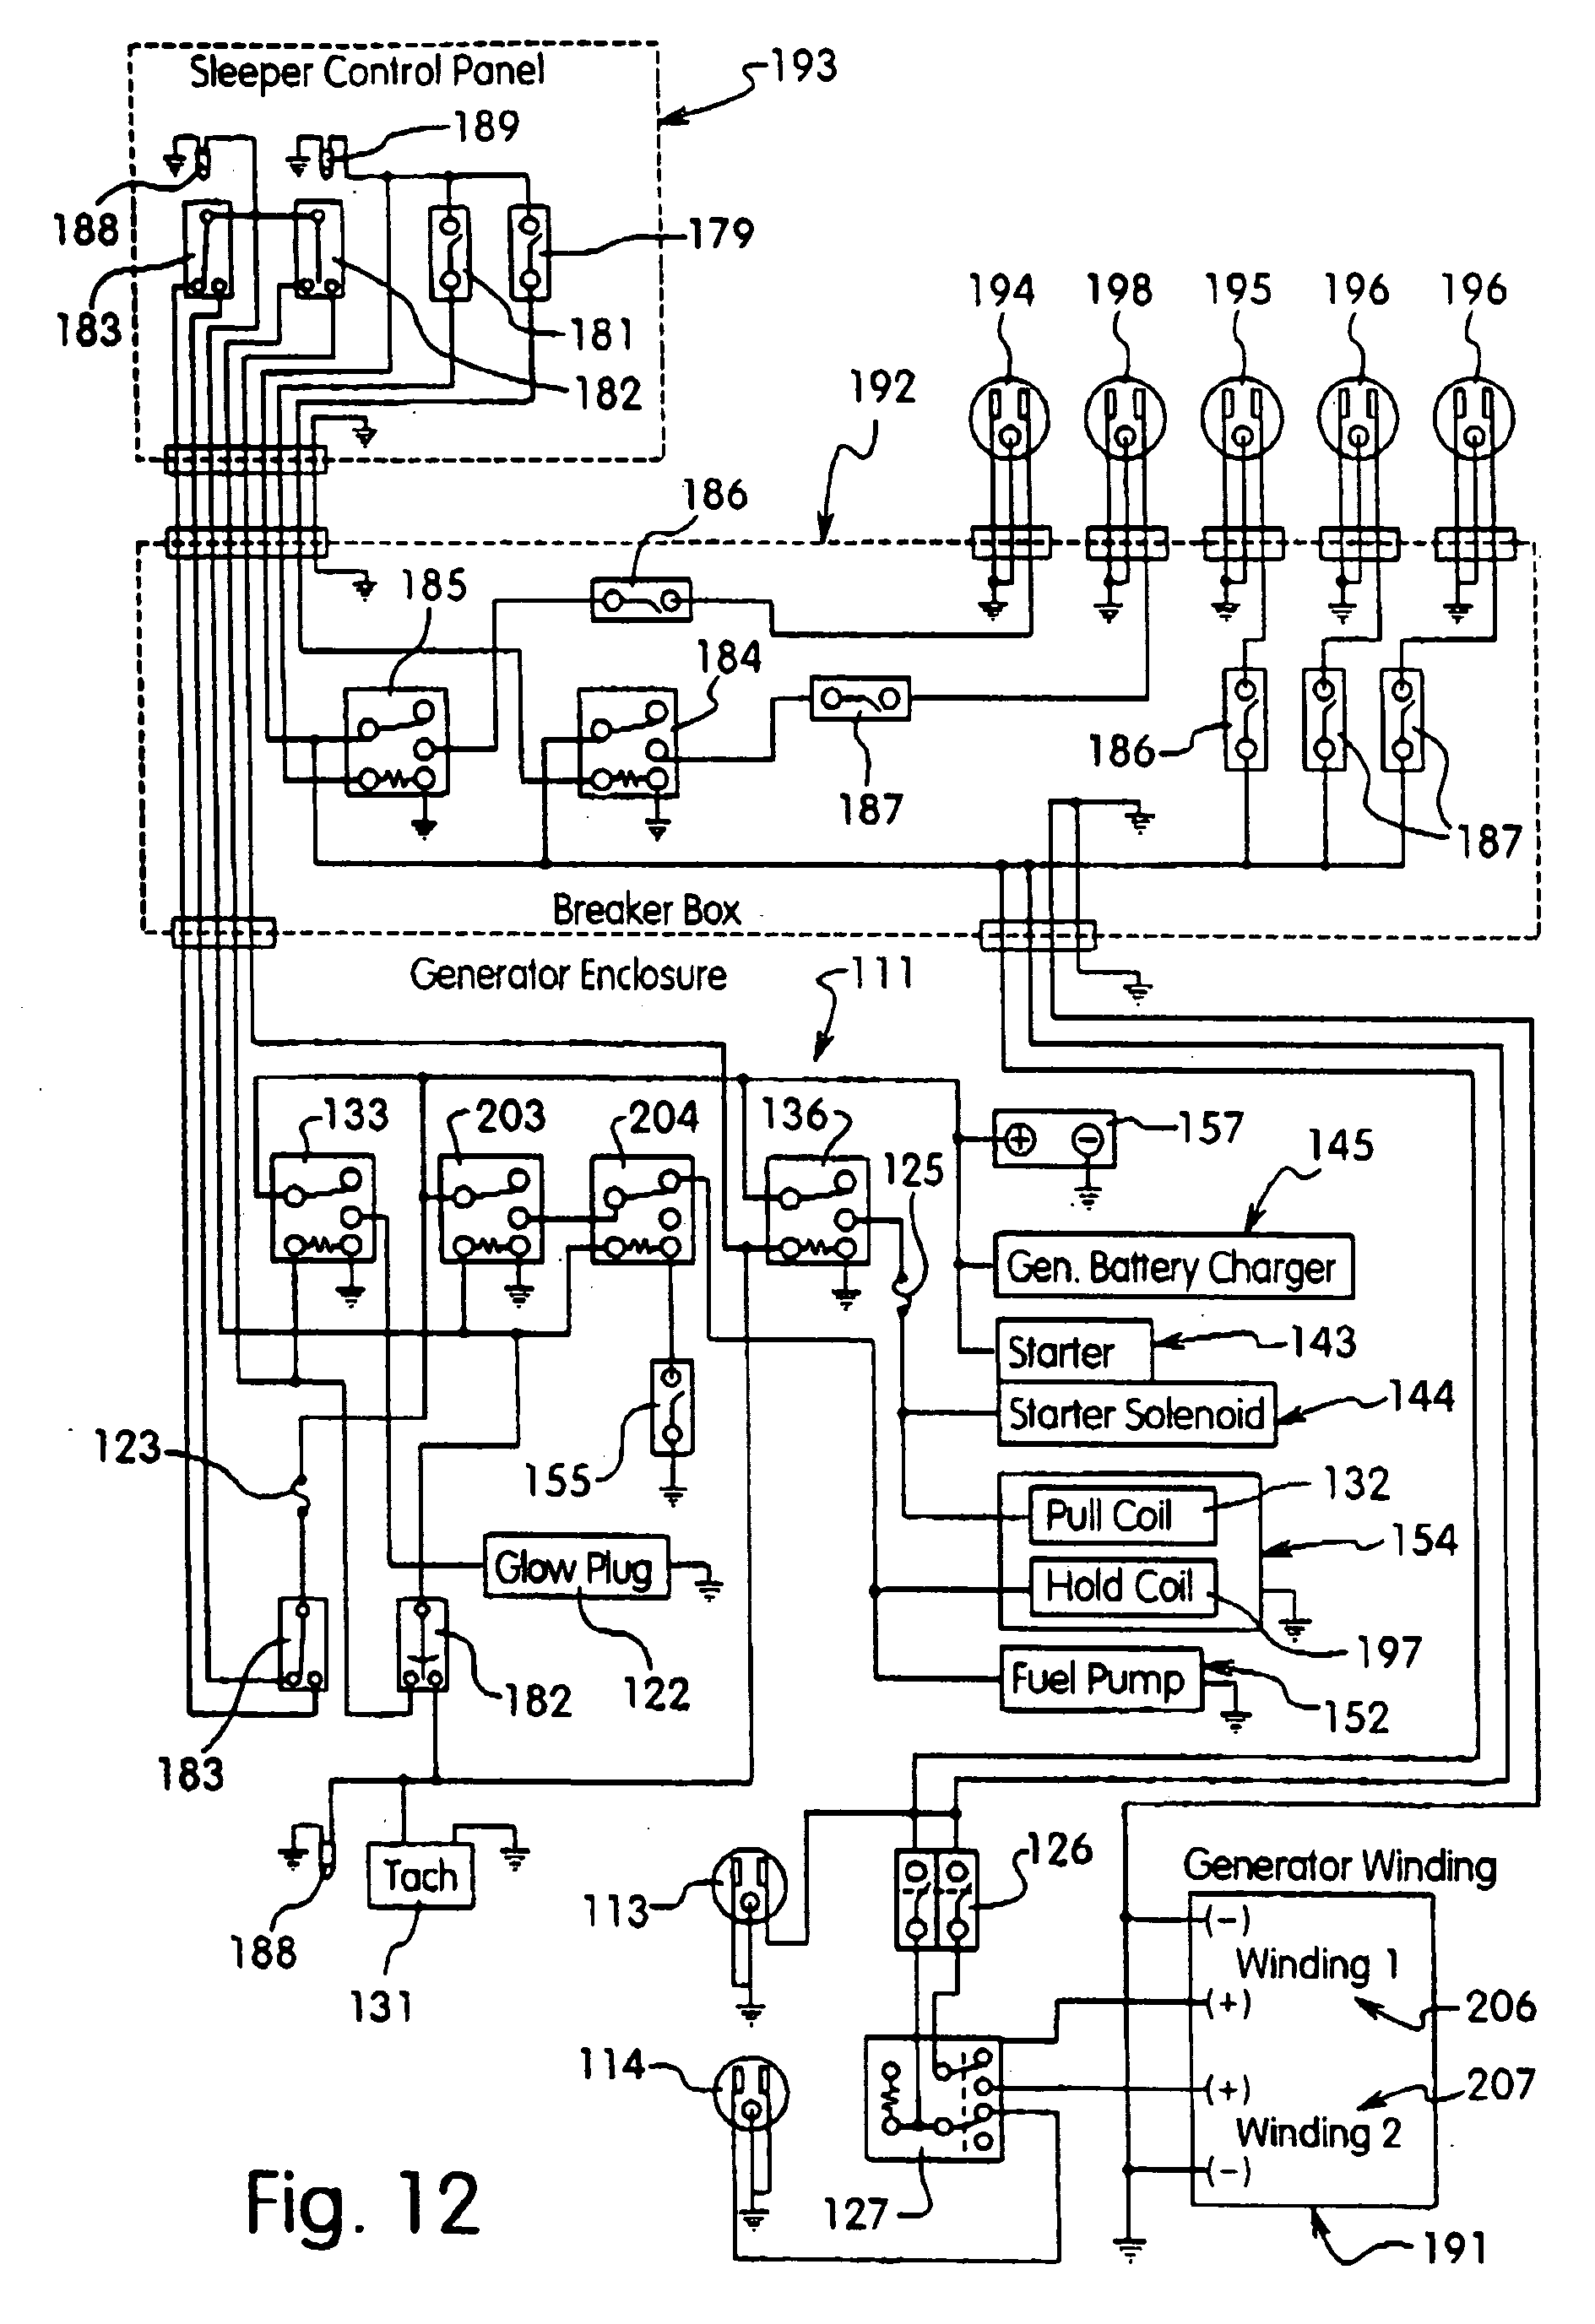 Cummins Generator Wiring Diagram